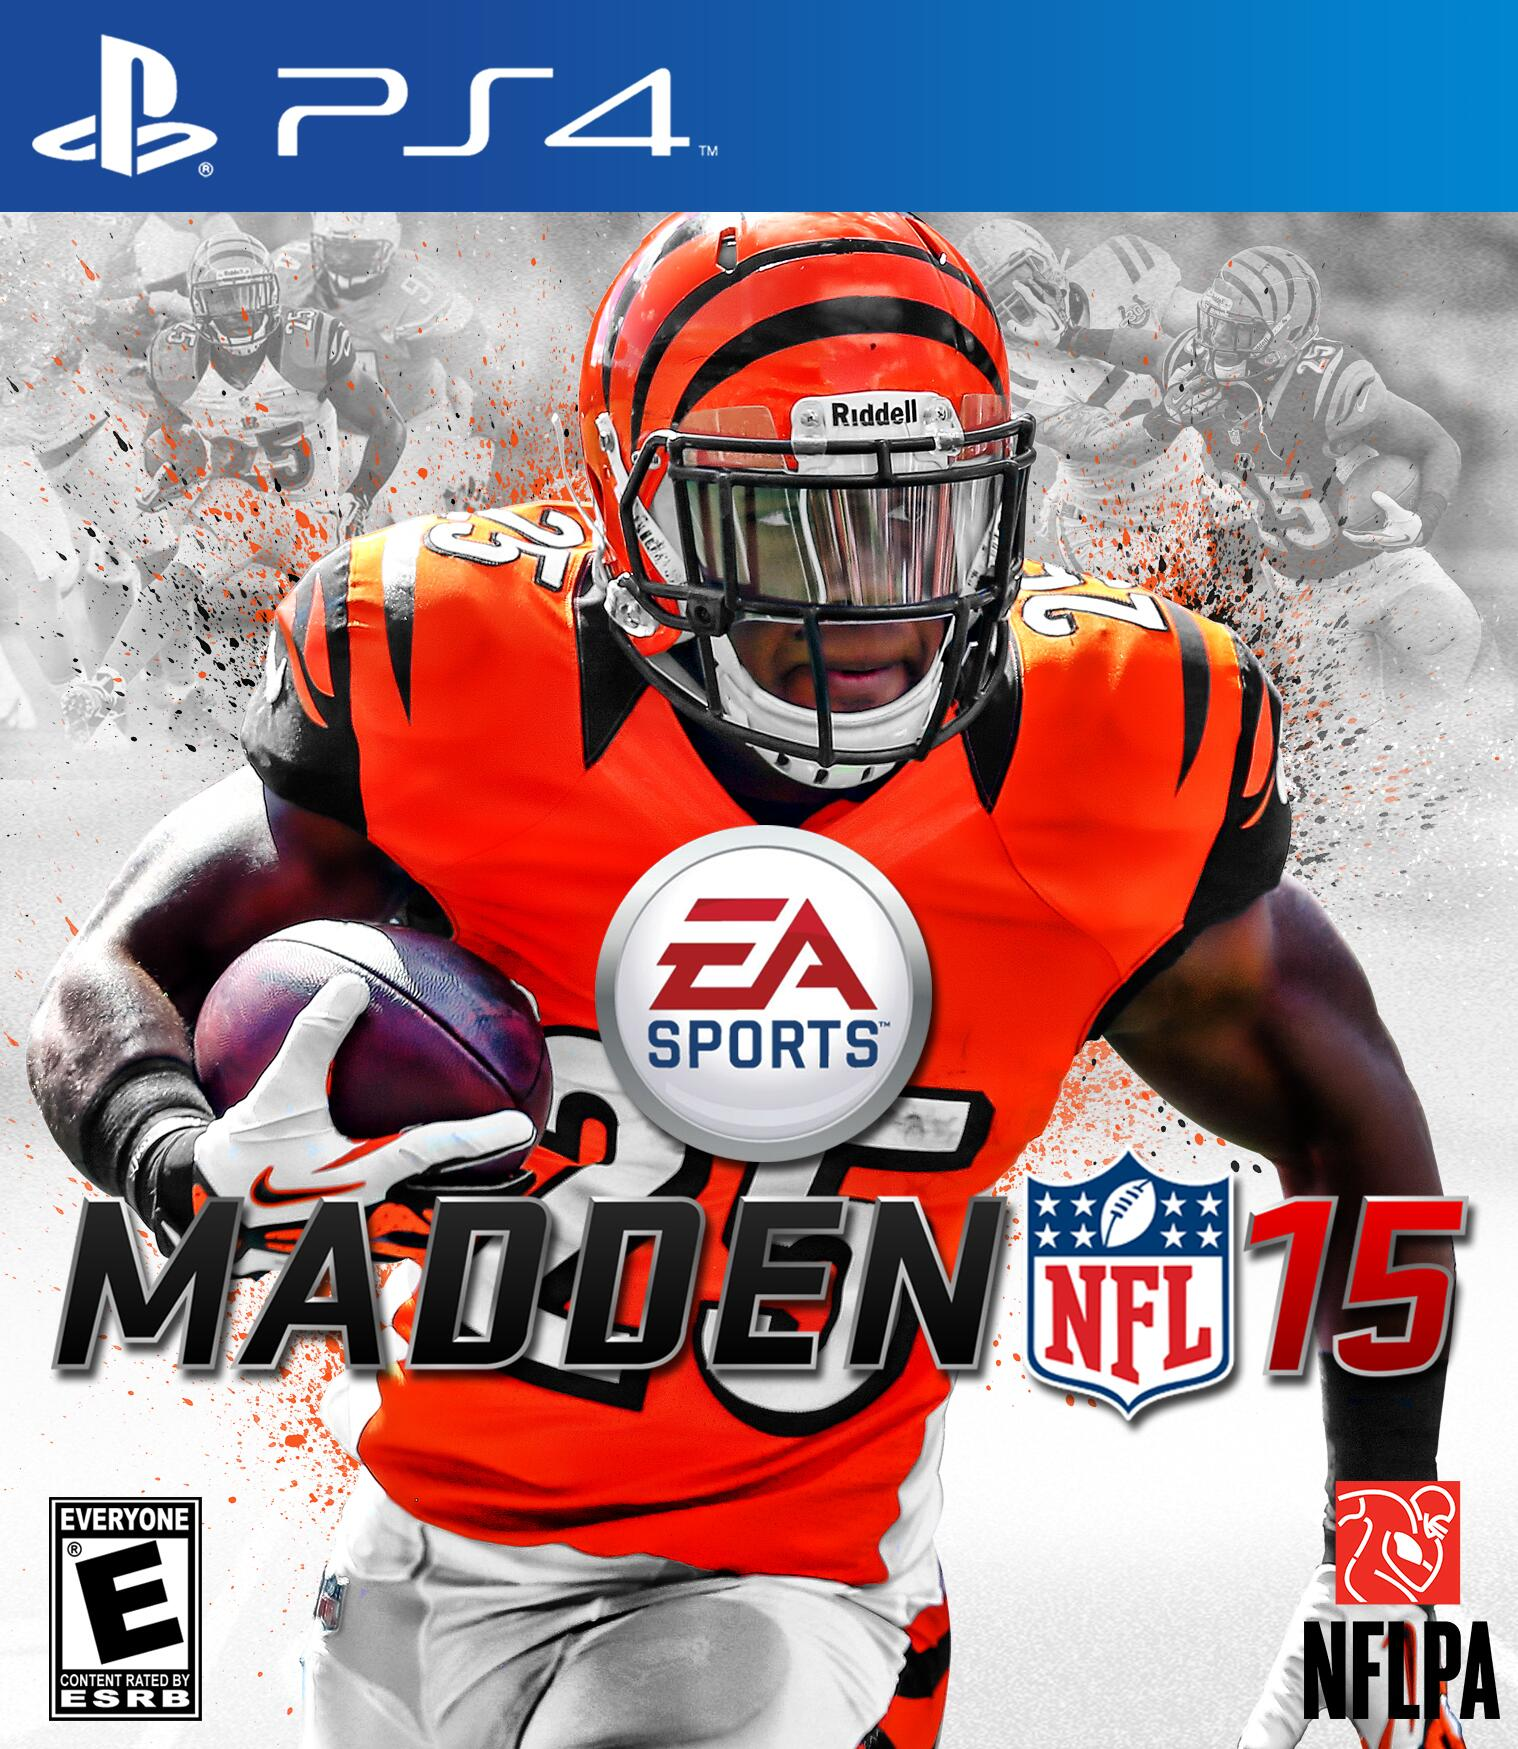 @G_Bernard25 made you a #Madden15 #PS4 cover man hope u like it! #WhoDey http://t.co/1hap25rOlR